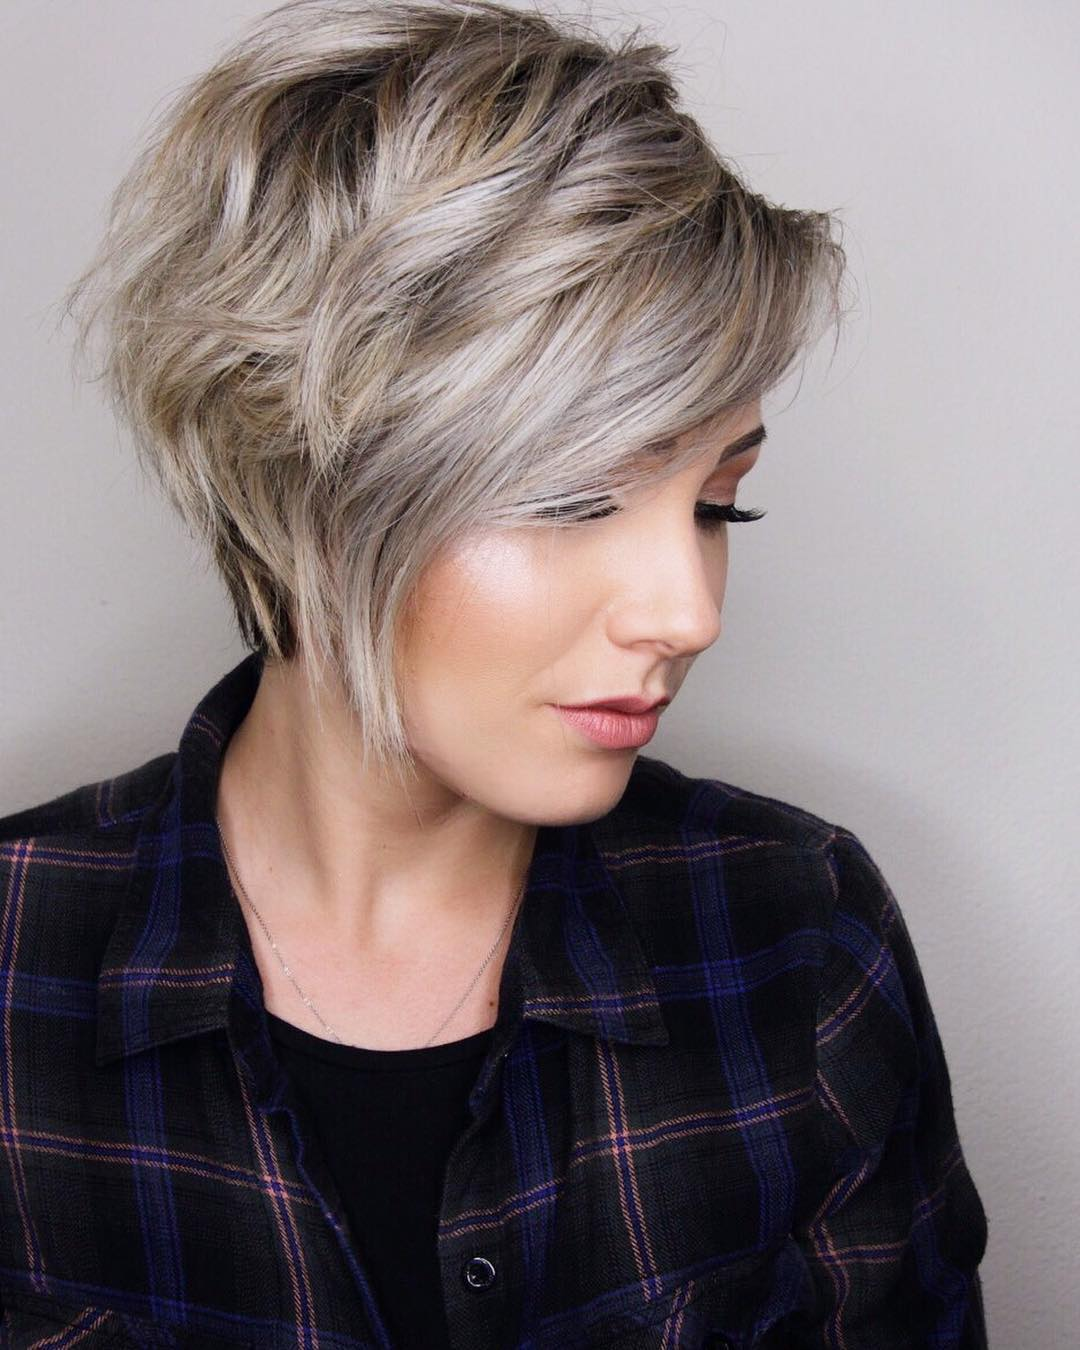 Short Hairstyles 2017 2018: 10 Trendy Layered Short Haircut Ideas 2019